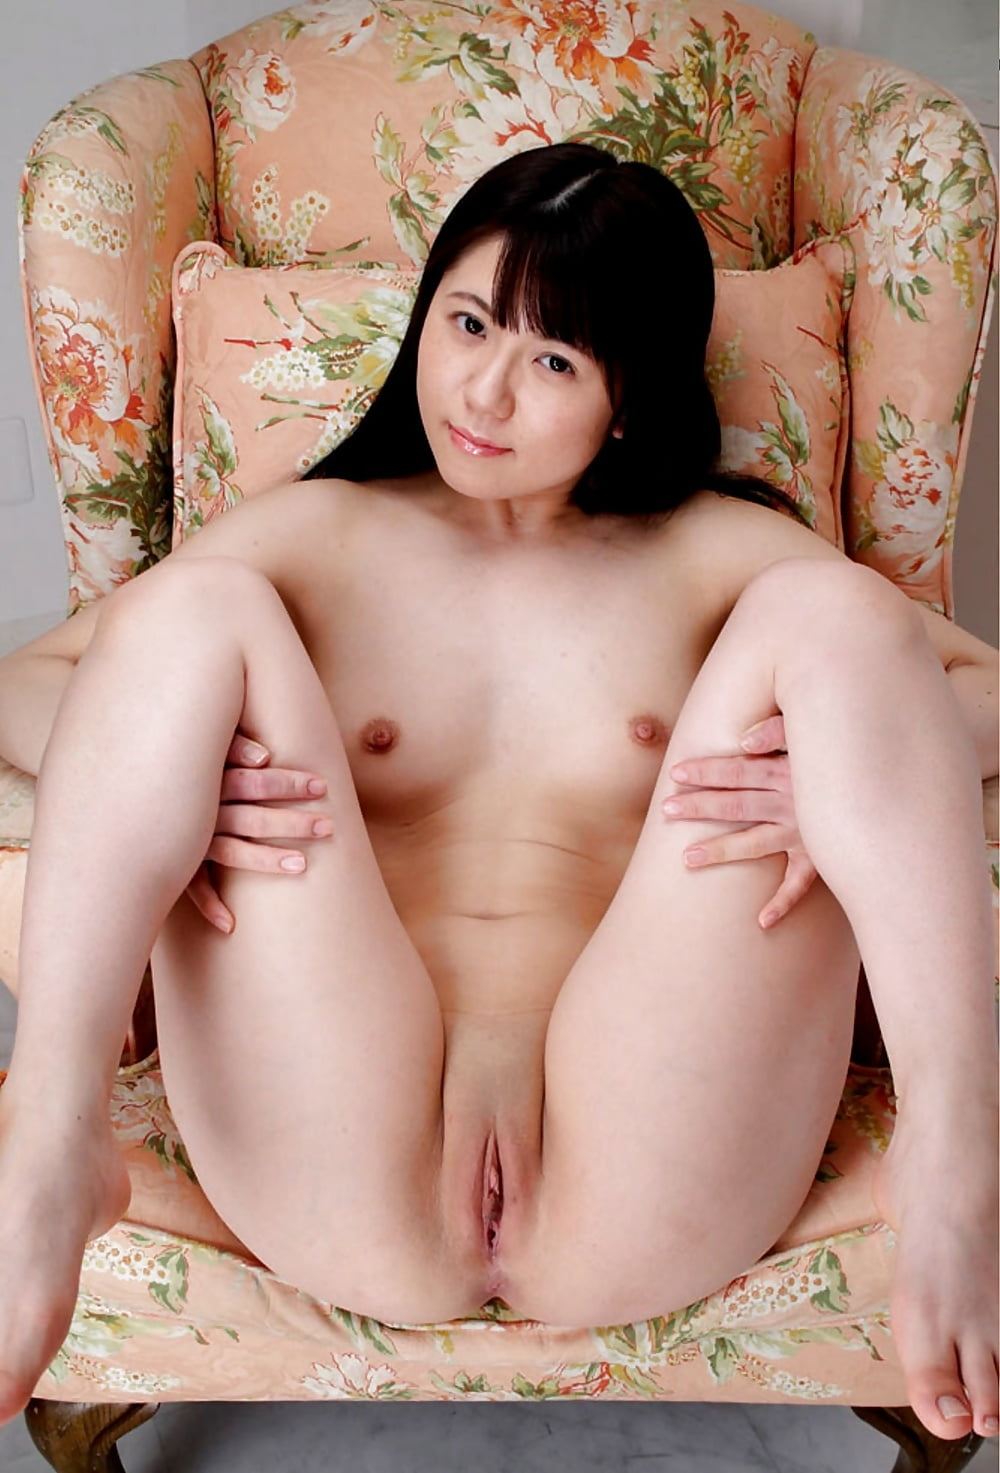 asia-silver-nude-vagina-griffin-pussy-fuck